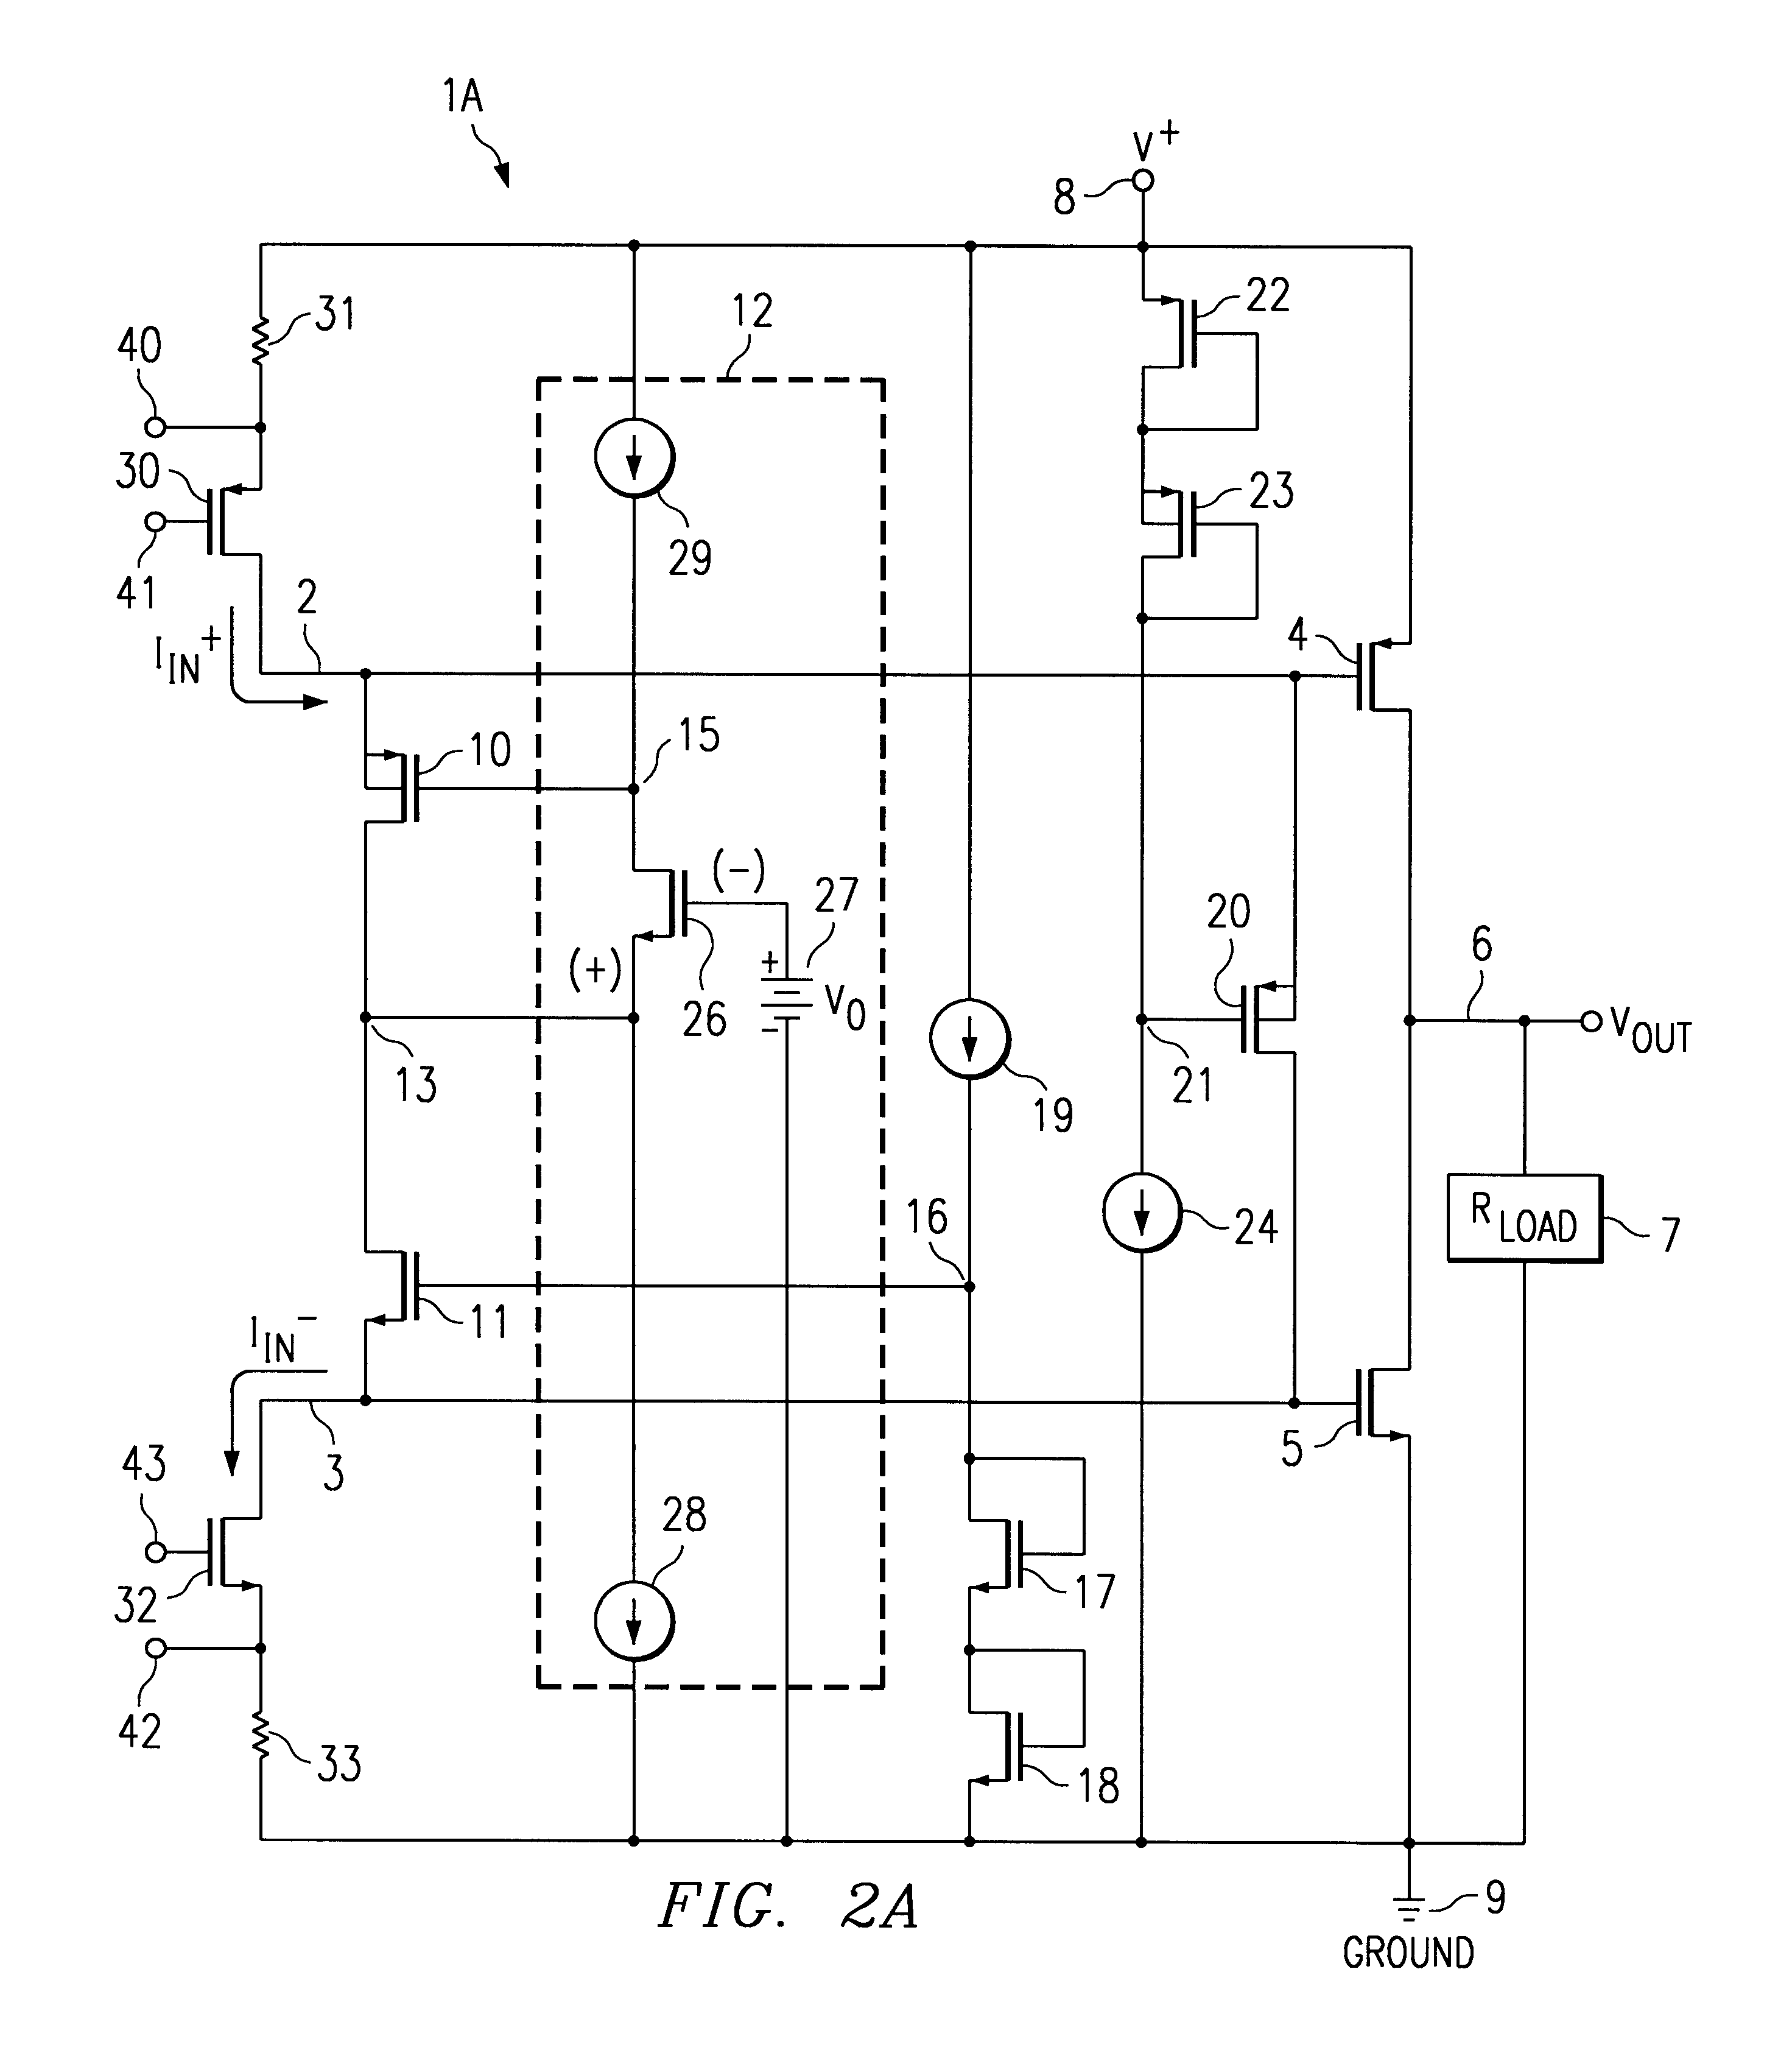 patent us6545538 rail to rail class ab output stage for high precision rail-to-rail output operational amplifier rail-to-rail input/output operational transconductance amplifier (ota) with high cmrr and psrr